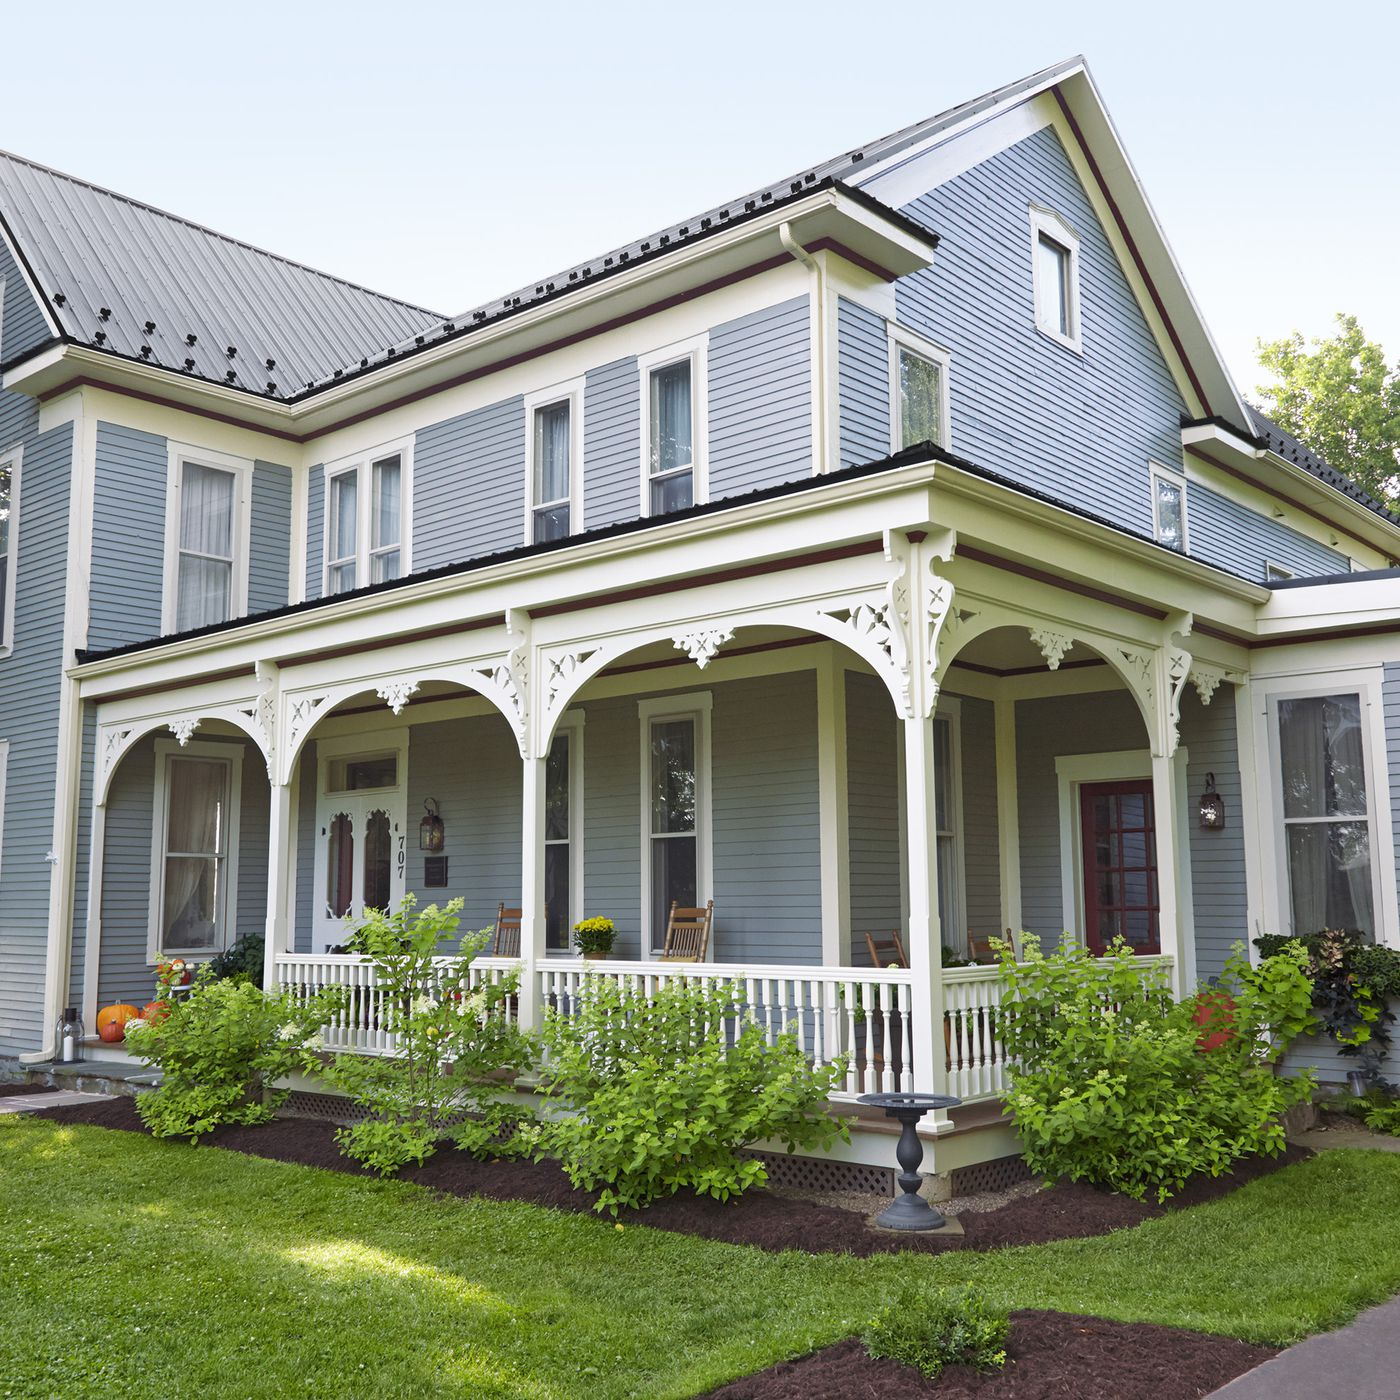 Rebuilt Wrap Around Porch For A Folk Victorian This Old House